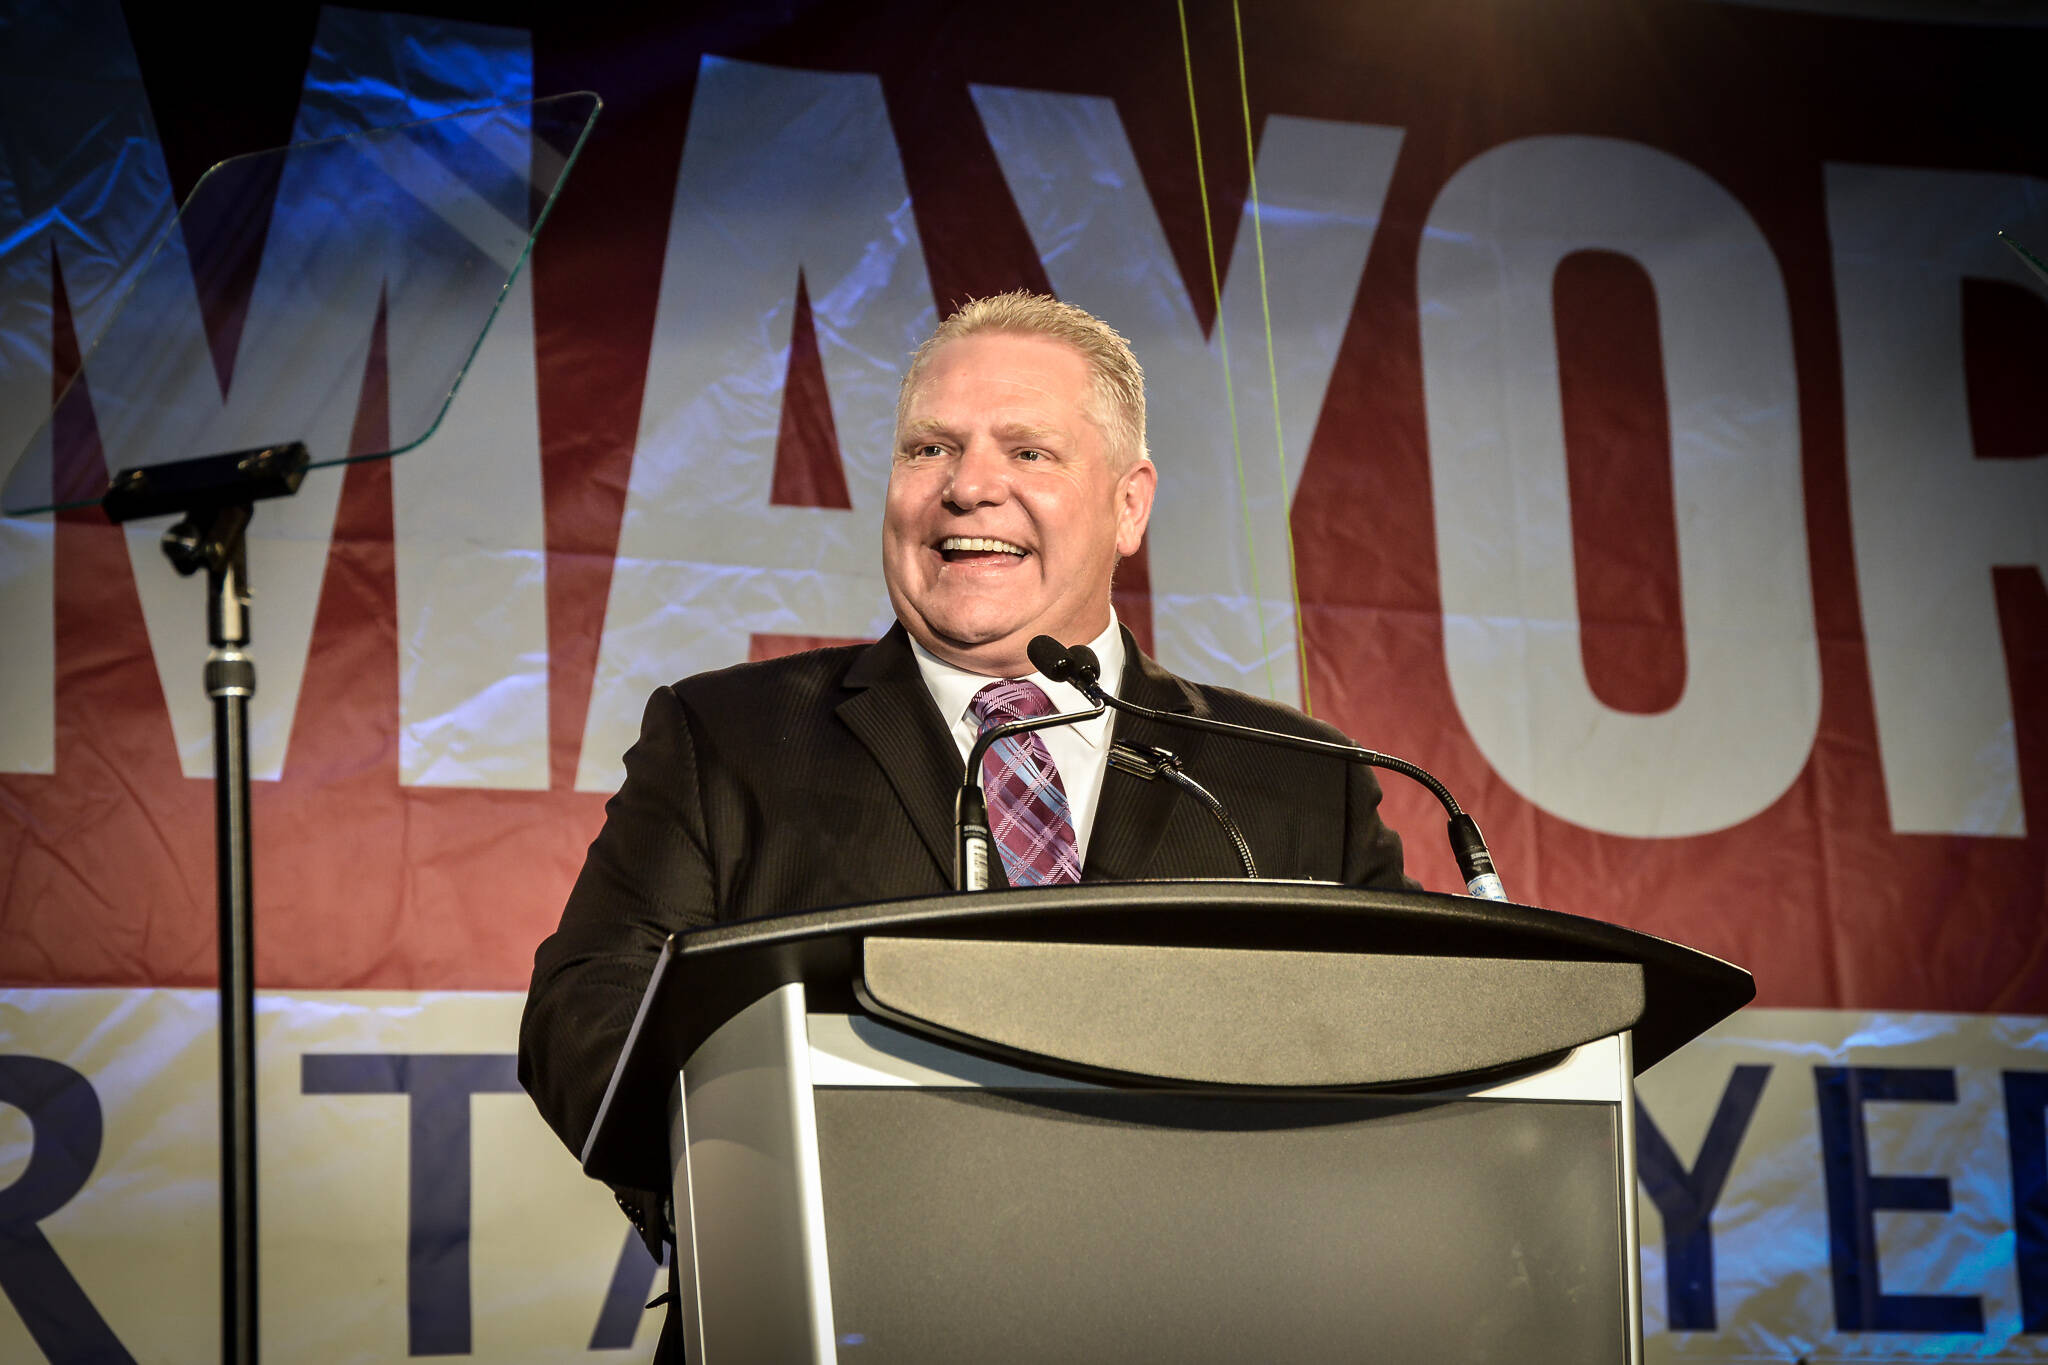 Ontario PC Ford